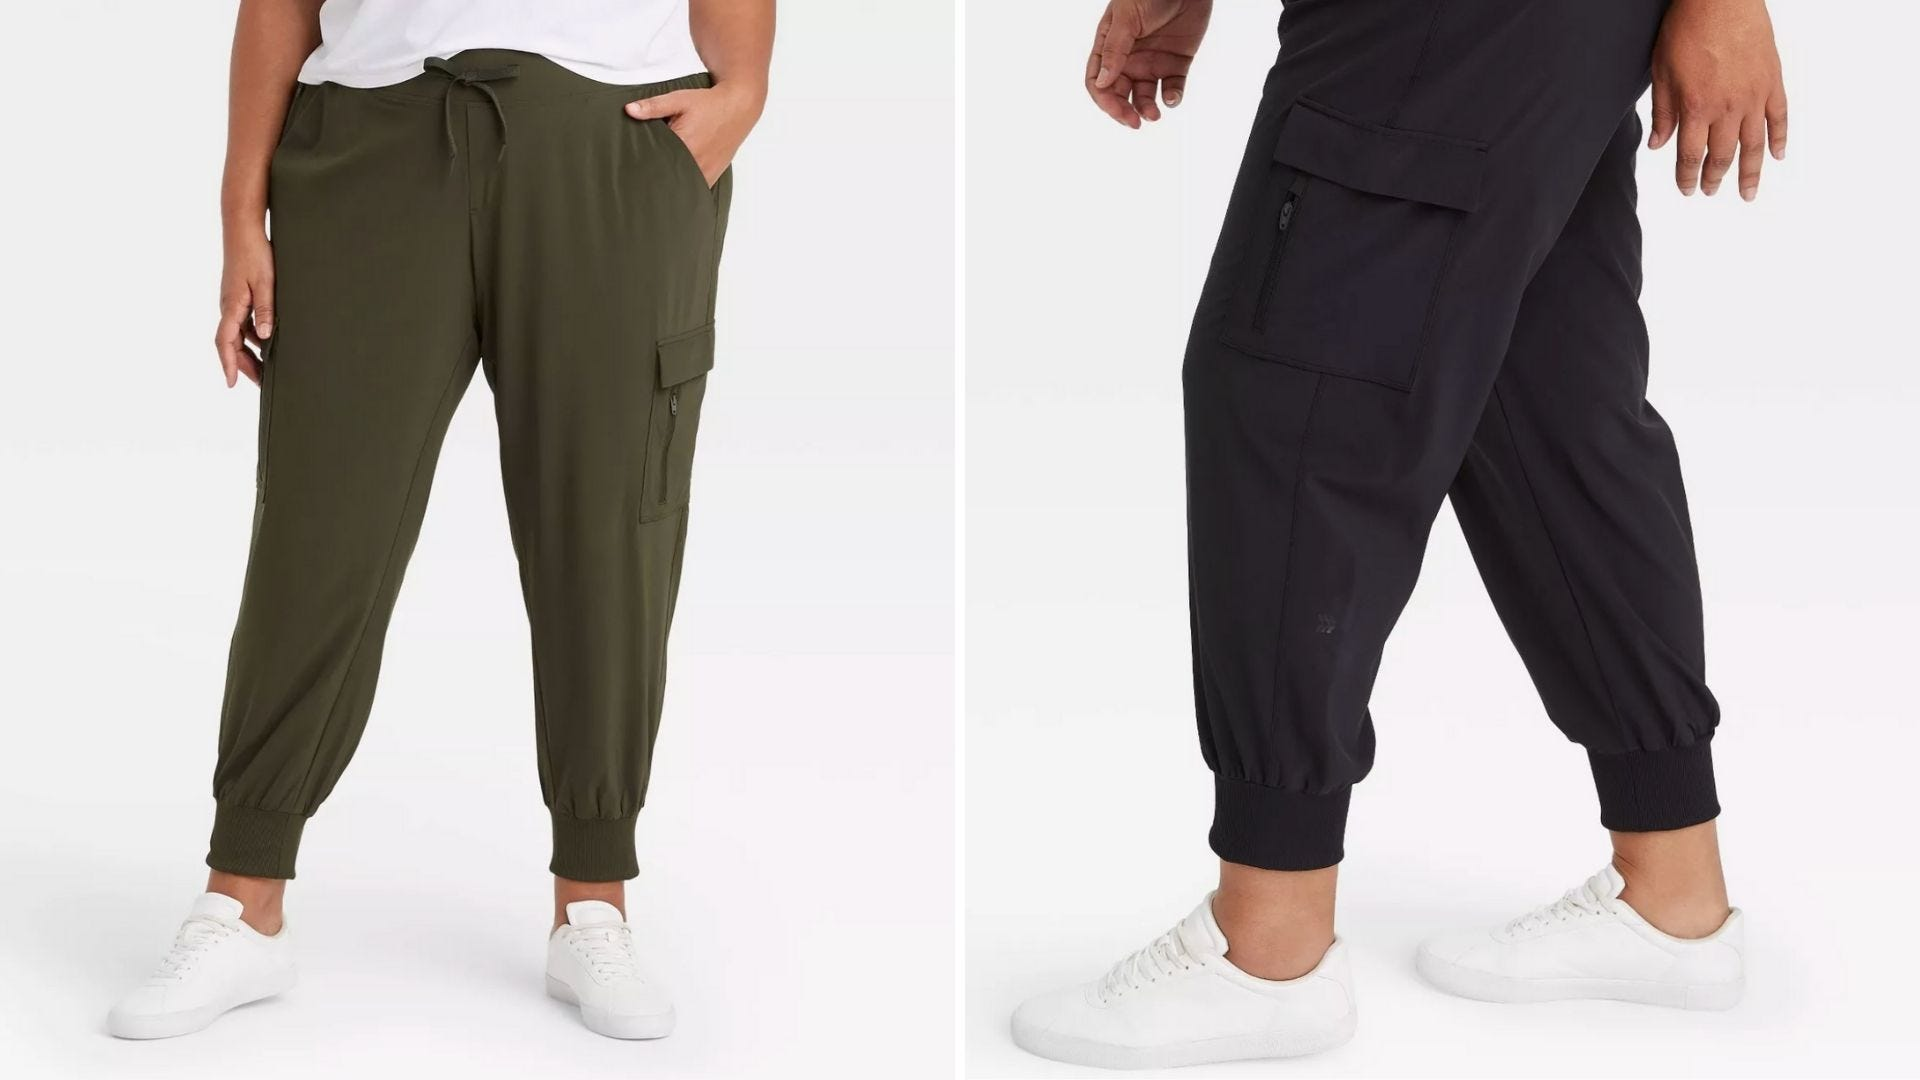 A woman wears olive green pants and a woman wears navy pants